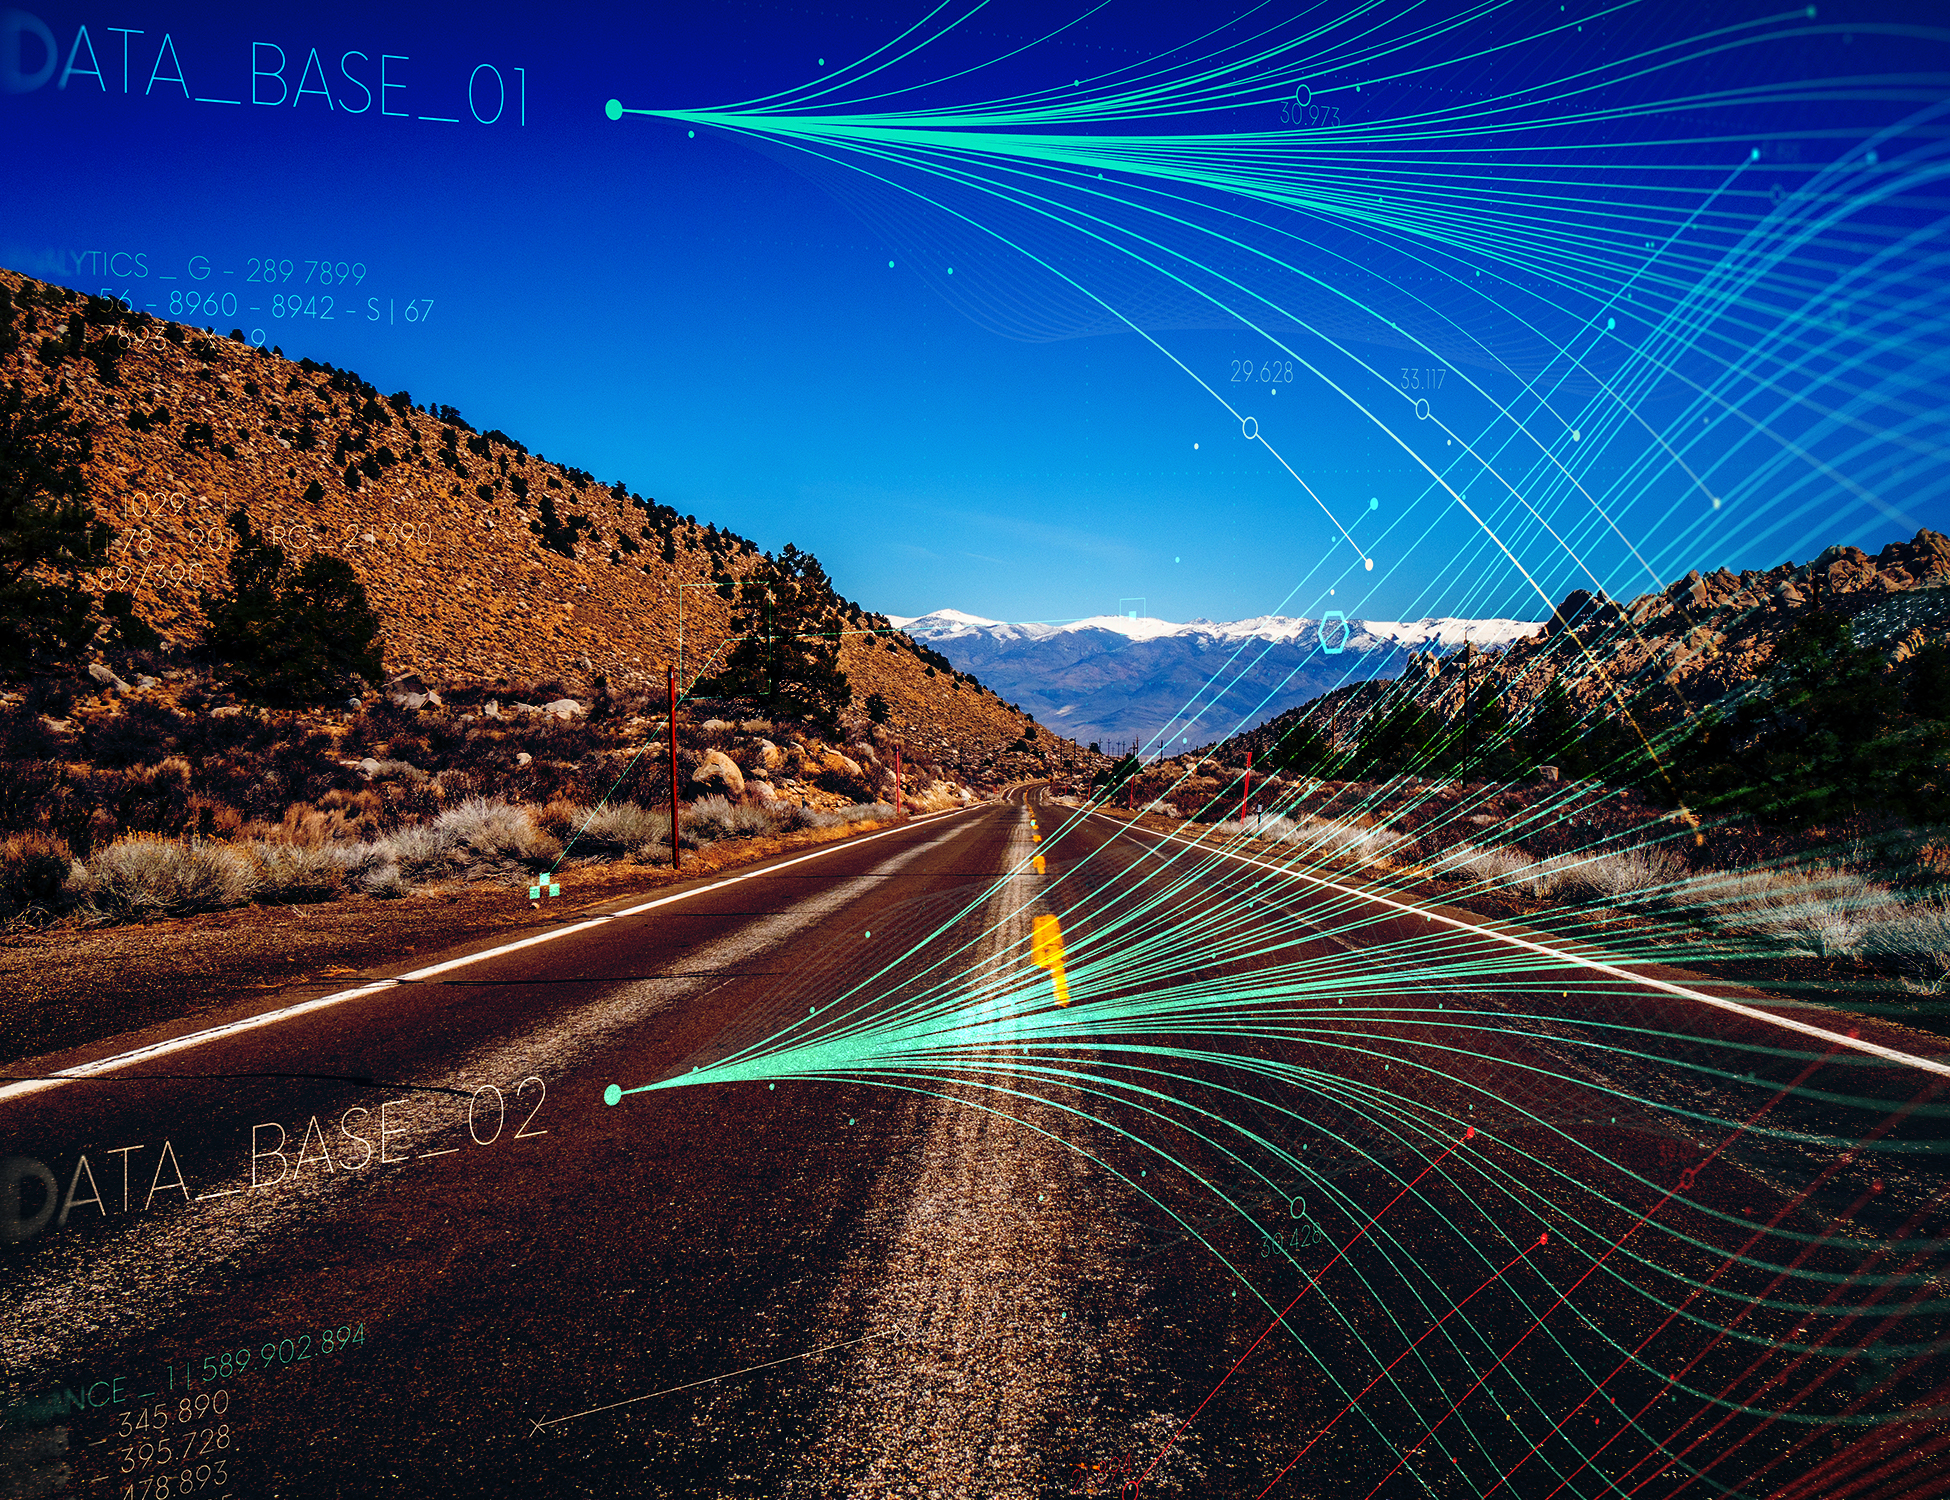 This graphic shows a desert highway at night with mountains in the background and streams of data shown overhead.